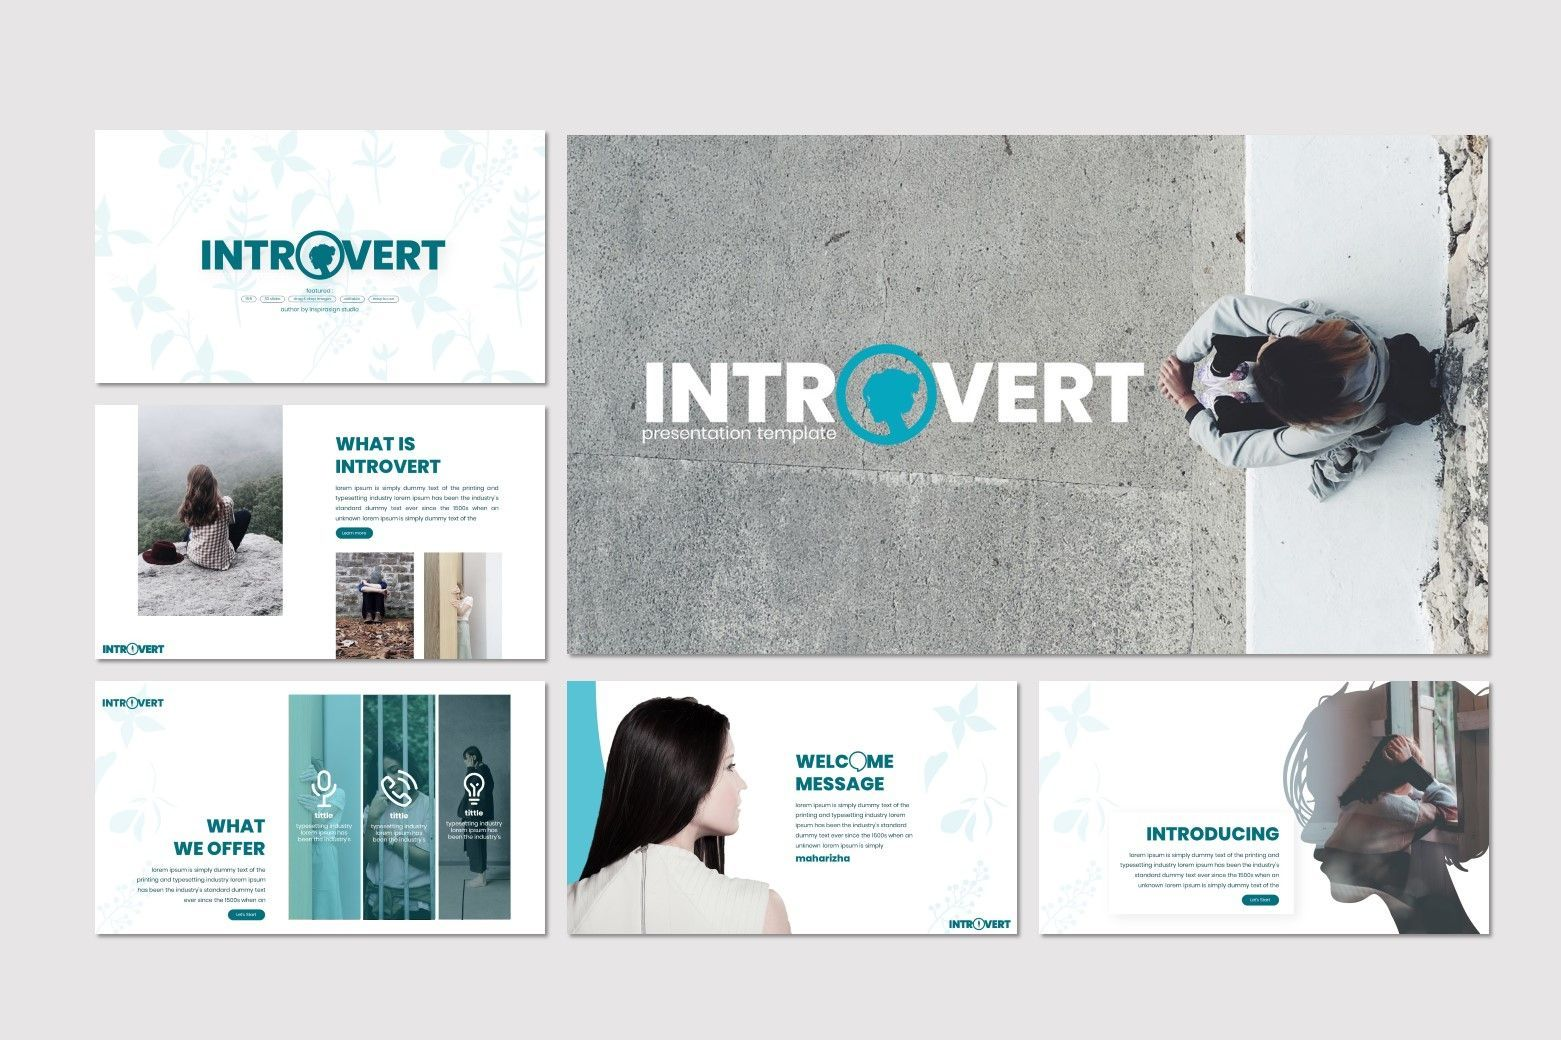 Introvert - PowerPoint Template, Slide 2, 07629, Presentation Templates — PoweredTemplate.com